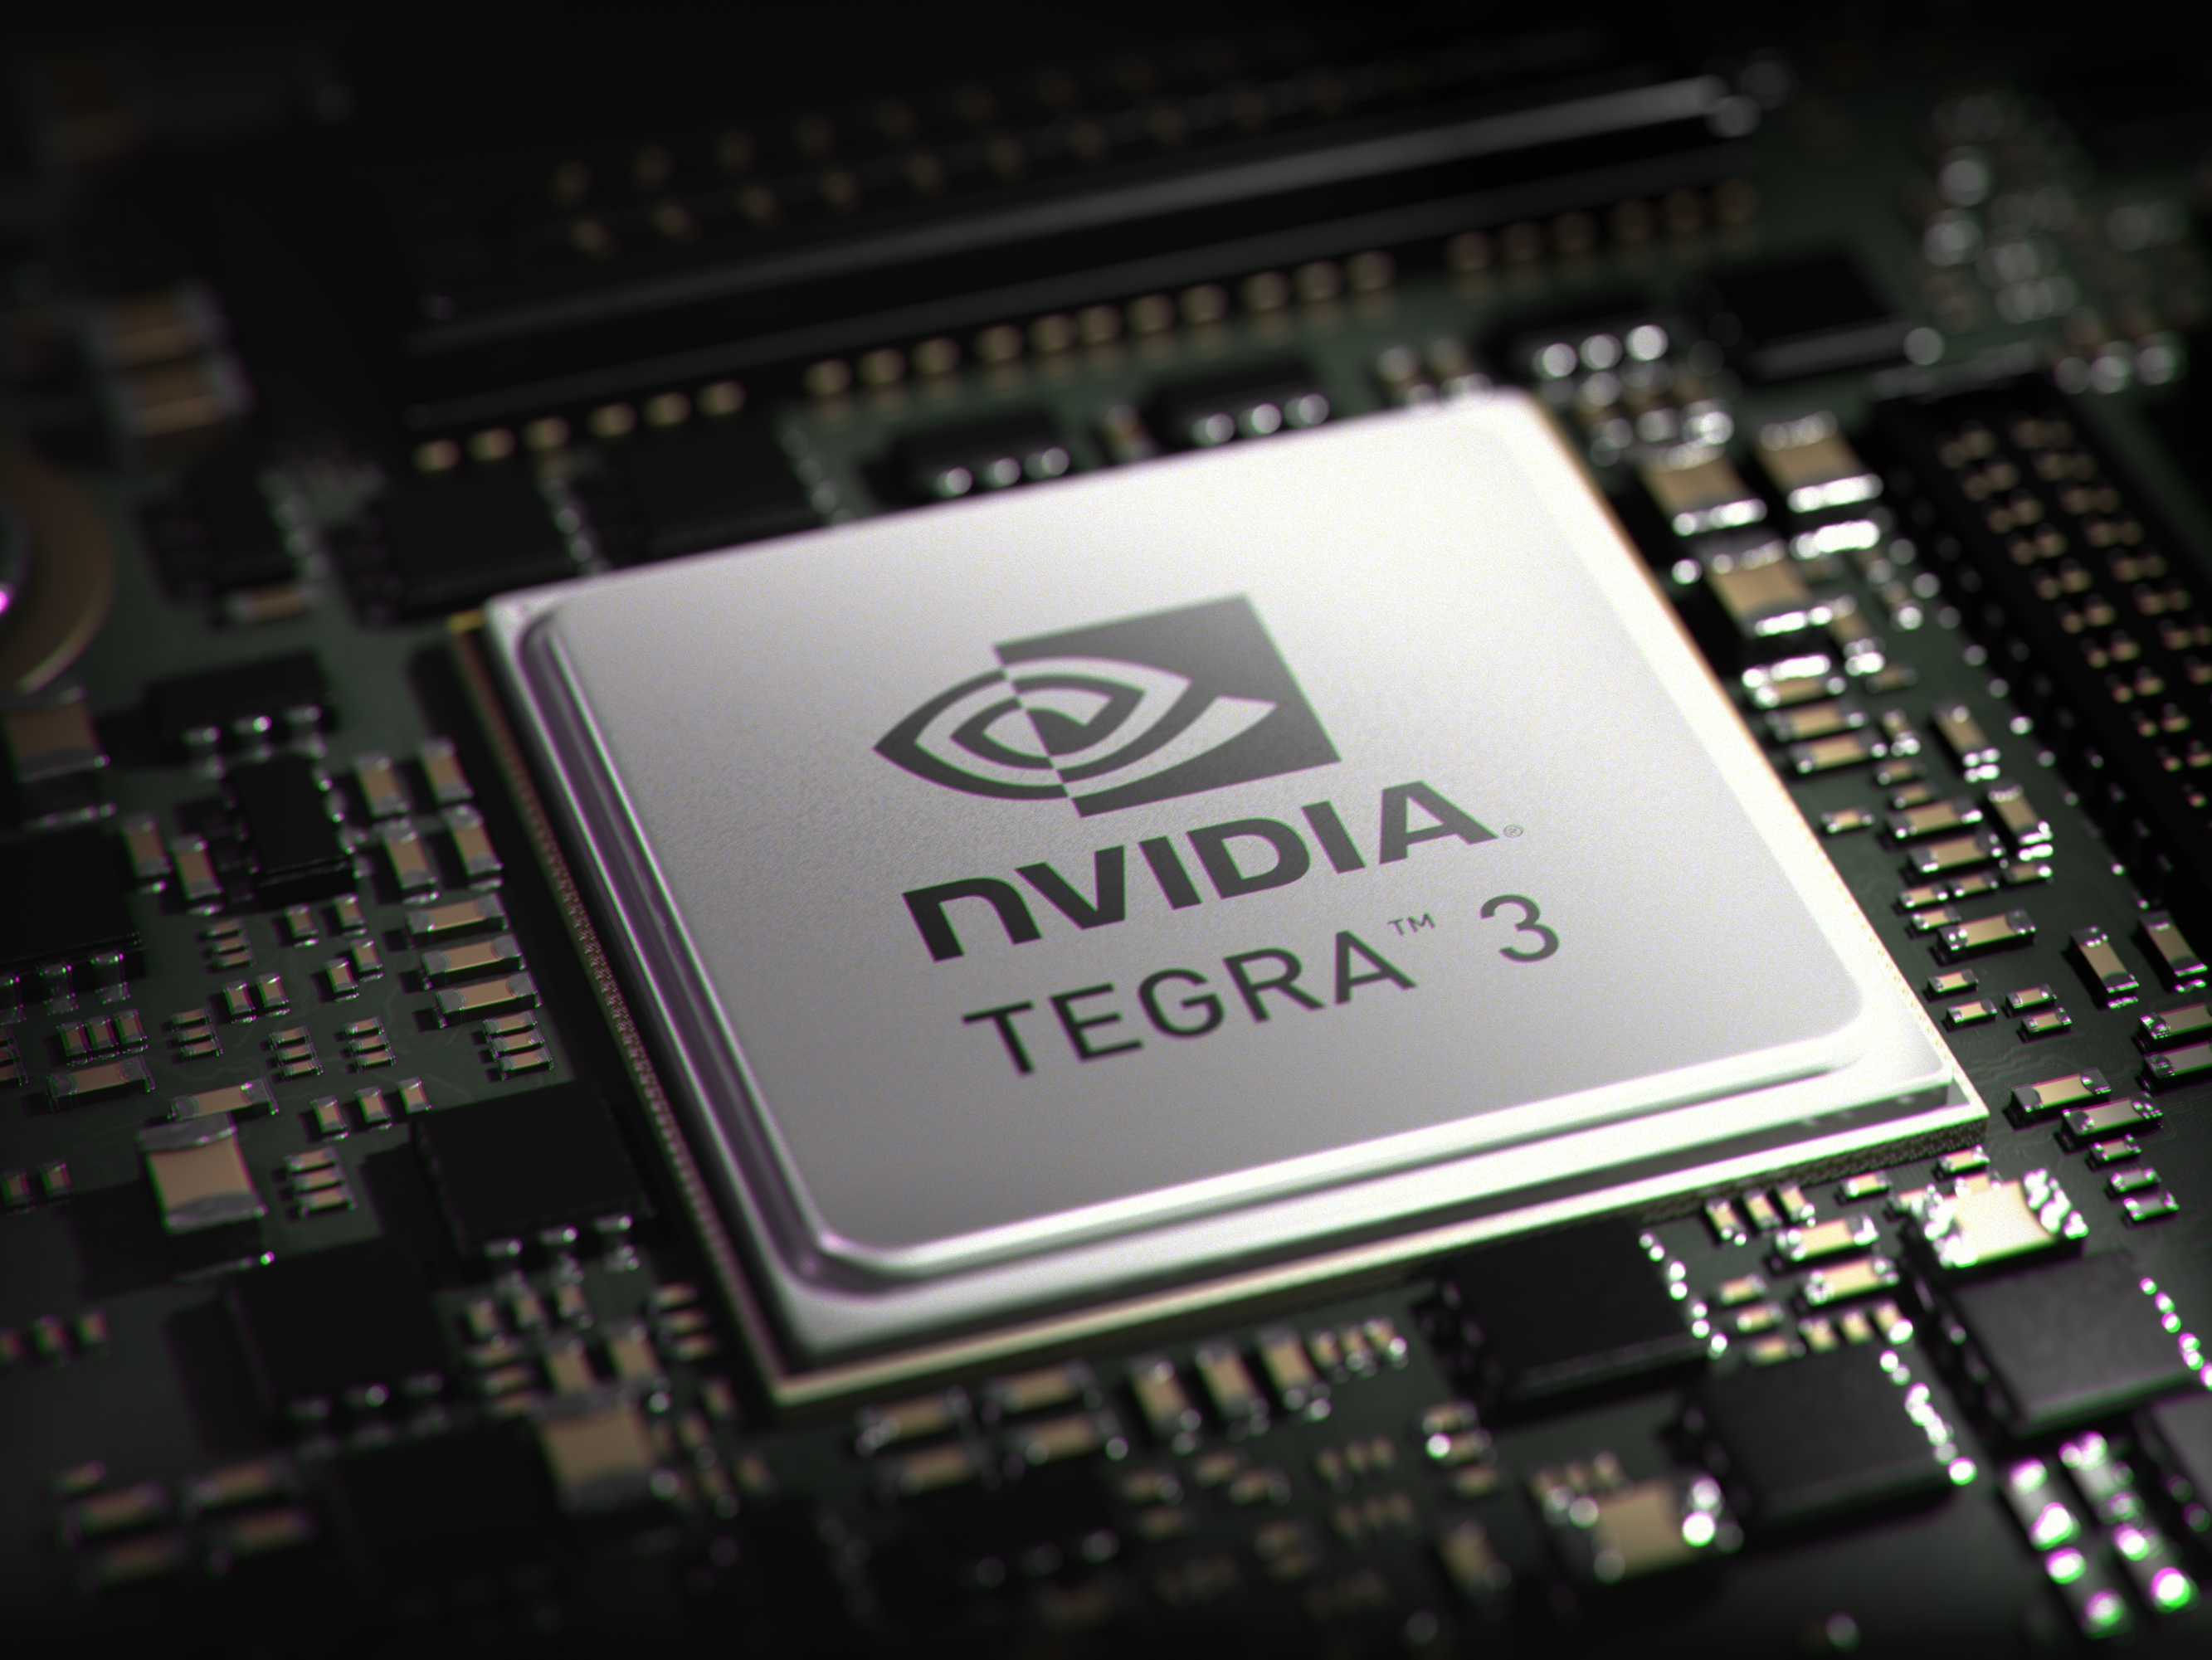 Nvidia tegra 3: what you need to know | techradar.